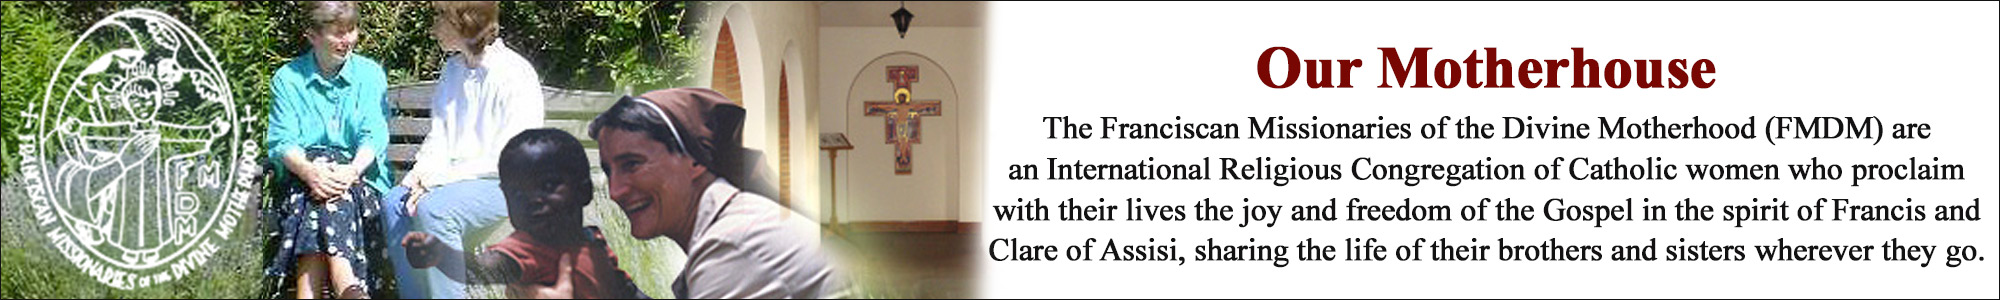 Franciscan Missionaries of the Divine Motherhood*